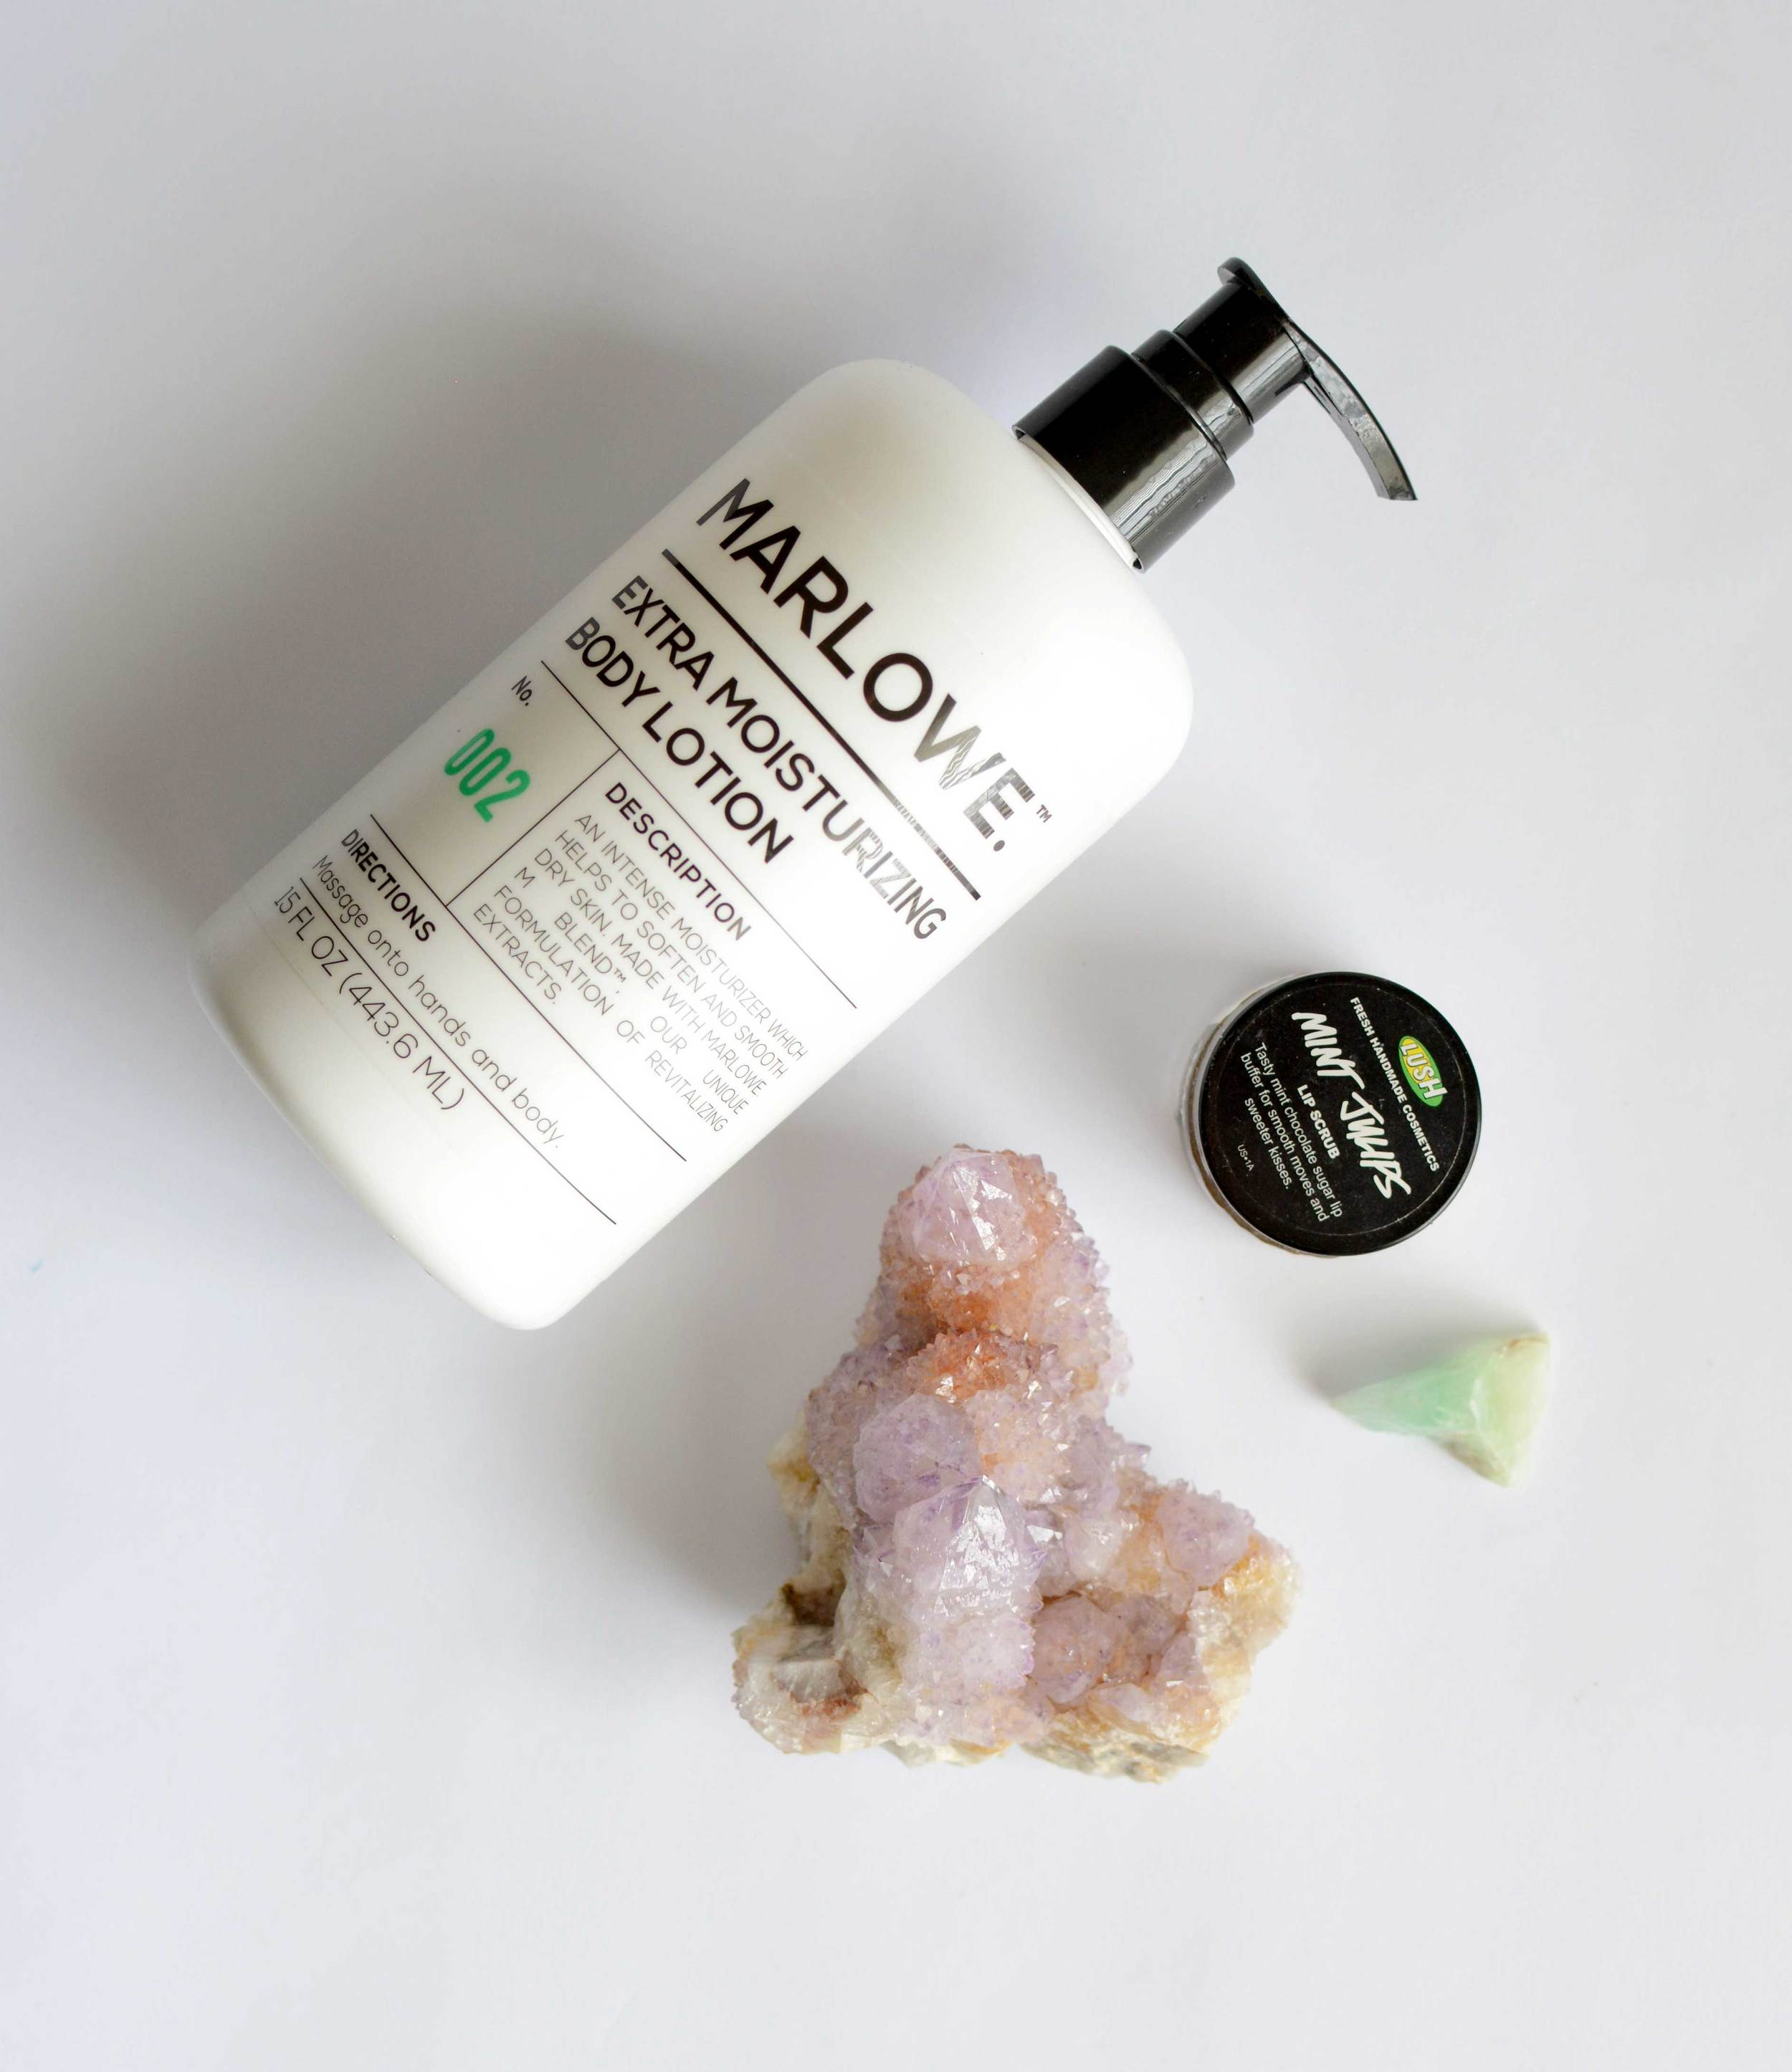 Marlowe Lotion from Target  /  Mint Julips Lip Scrub from Lush Cosmetics  /  Amethyst Spirit Quartz from Natural Magics  /  Green Calcite stone to refresh and cool